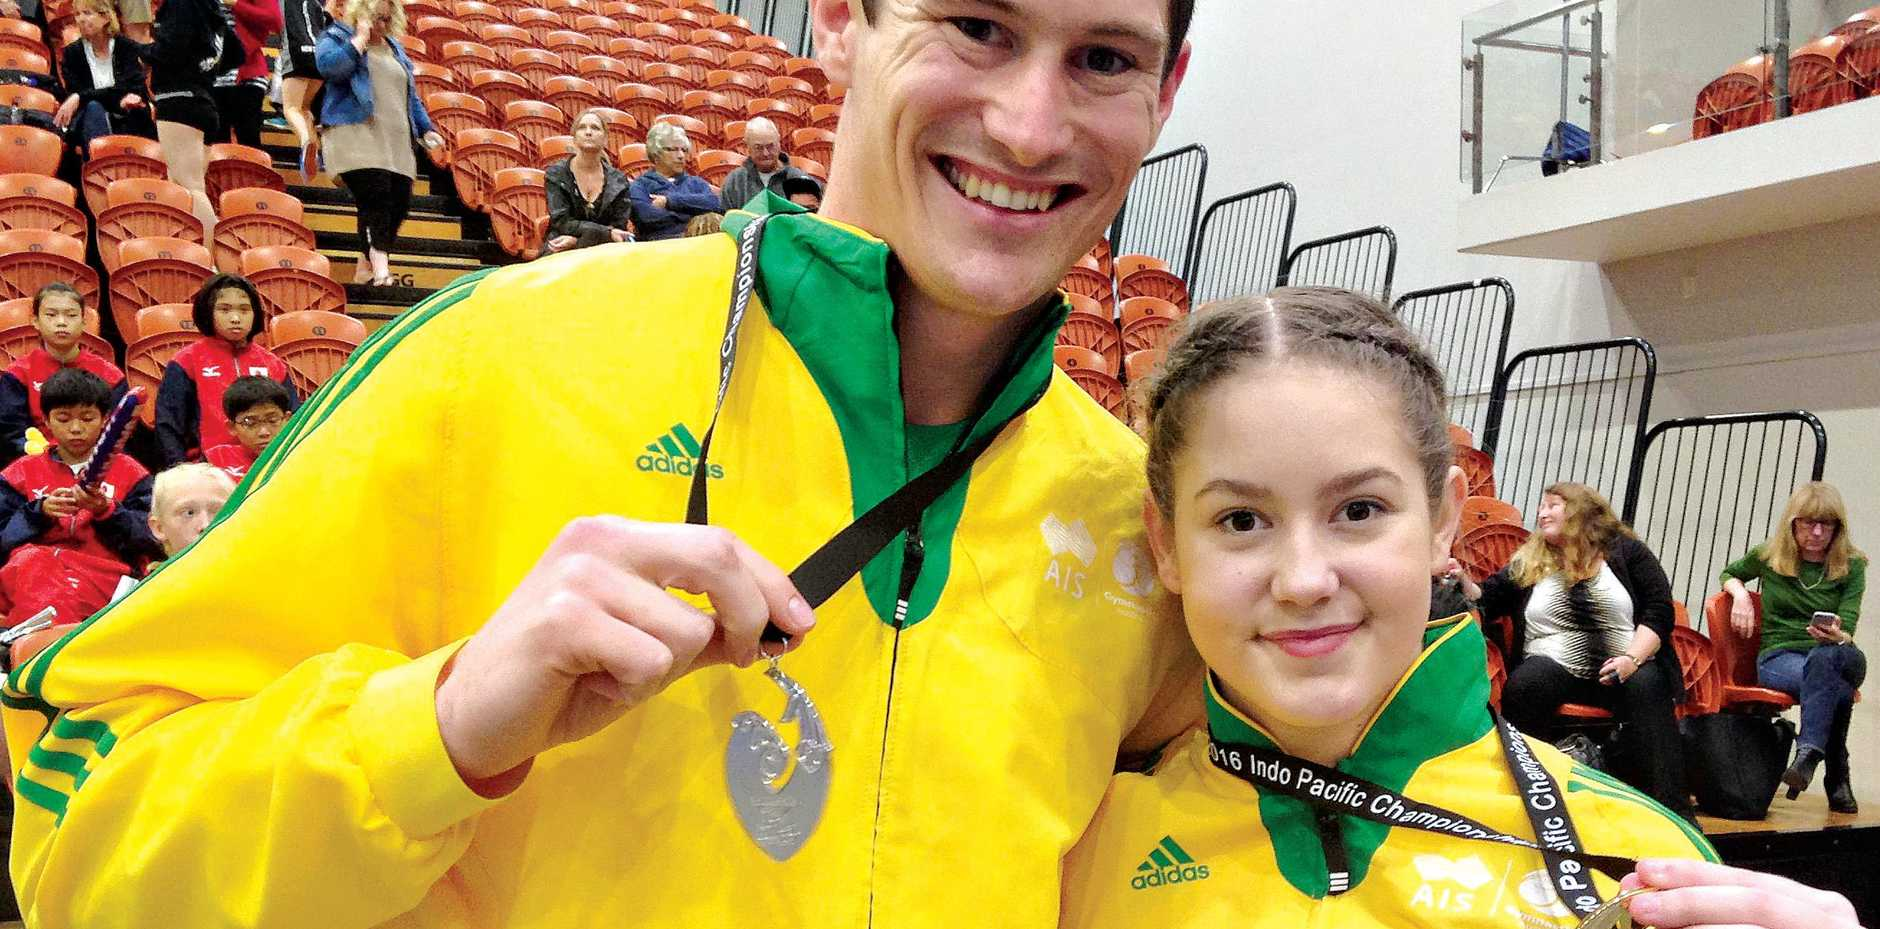 Victoria Park trampolinists Jarrod Spear and Britney Glazebrook with the medals they won at the 2016 Indo Pacific Championships.